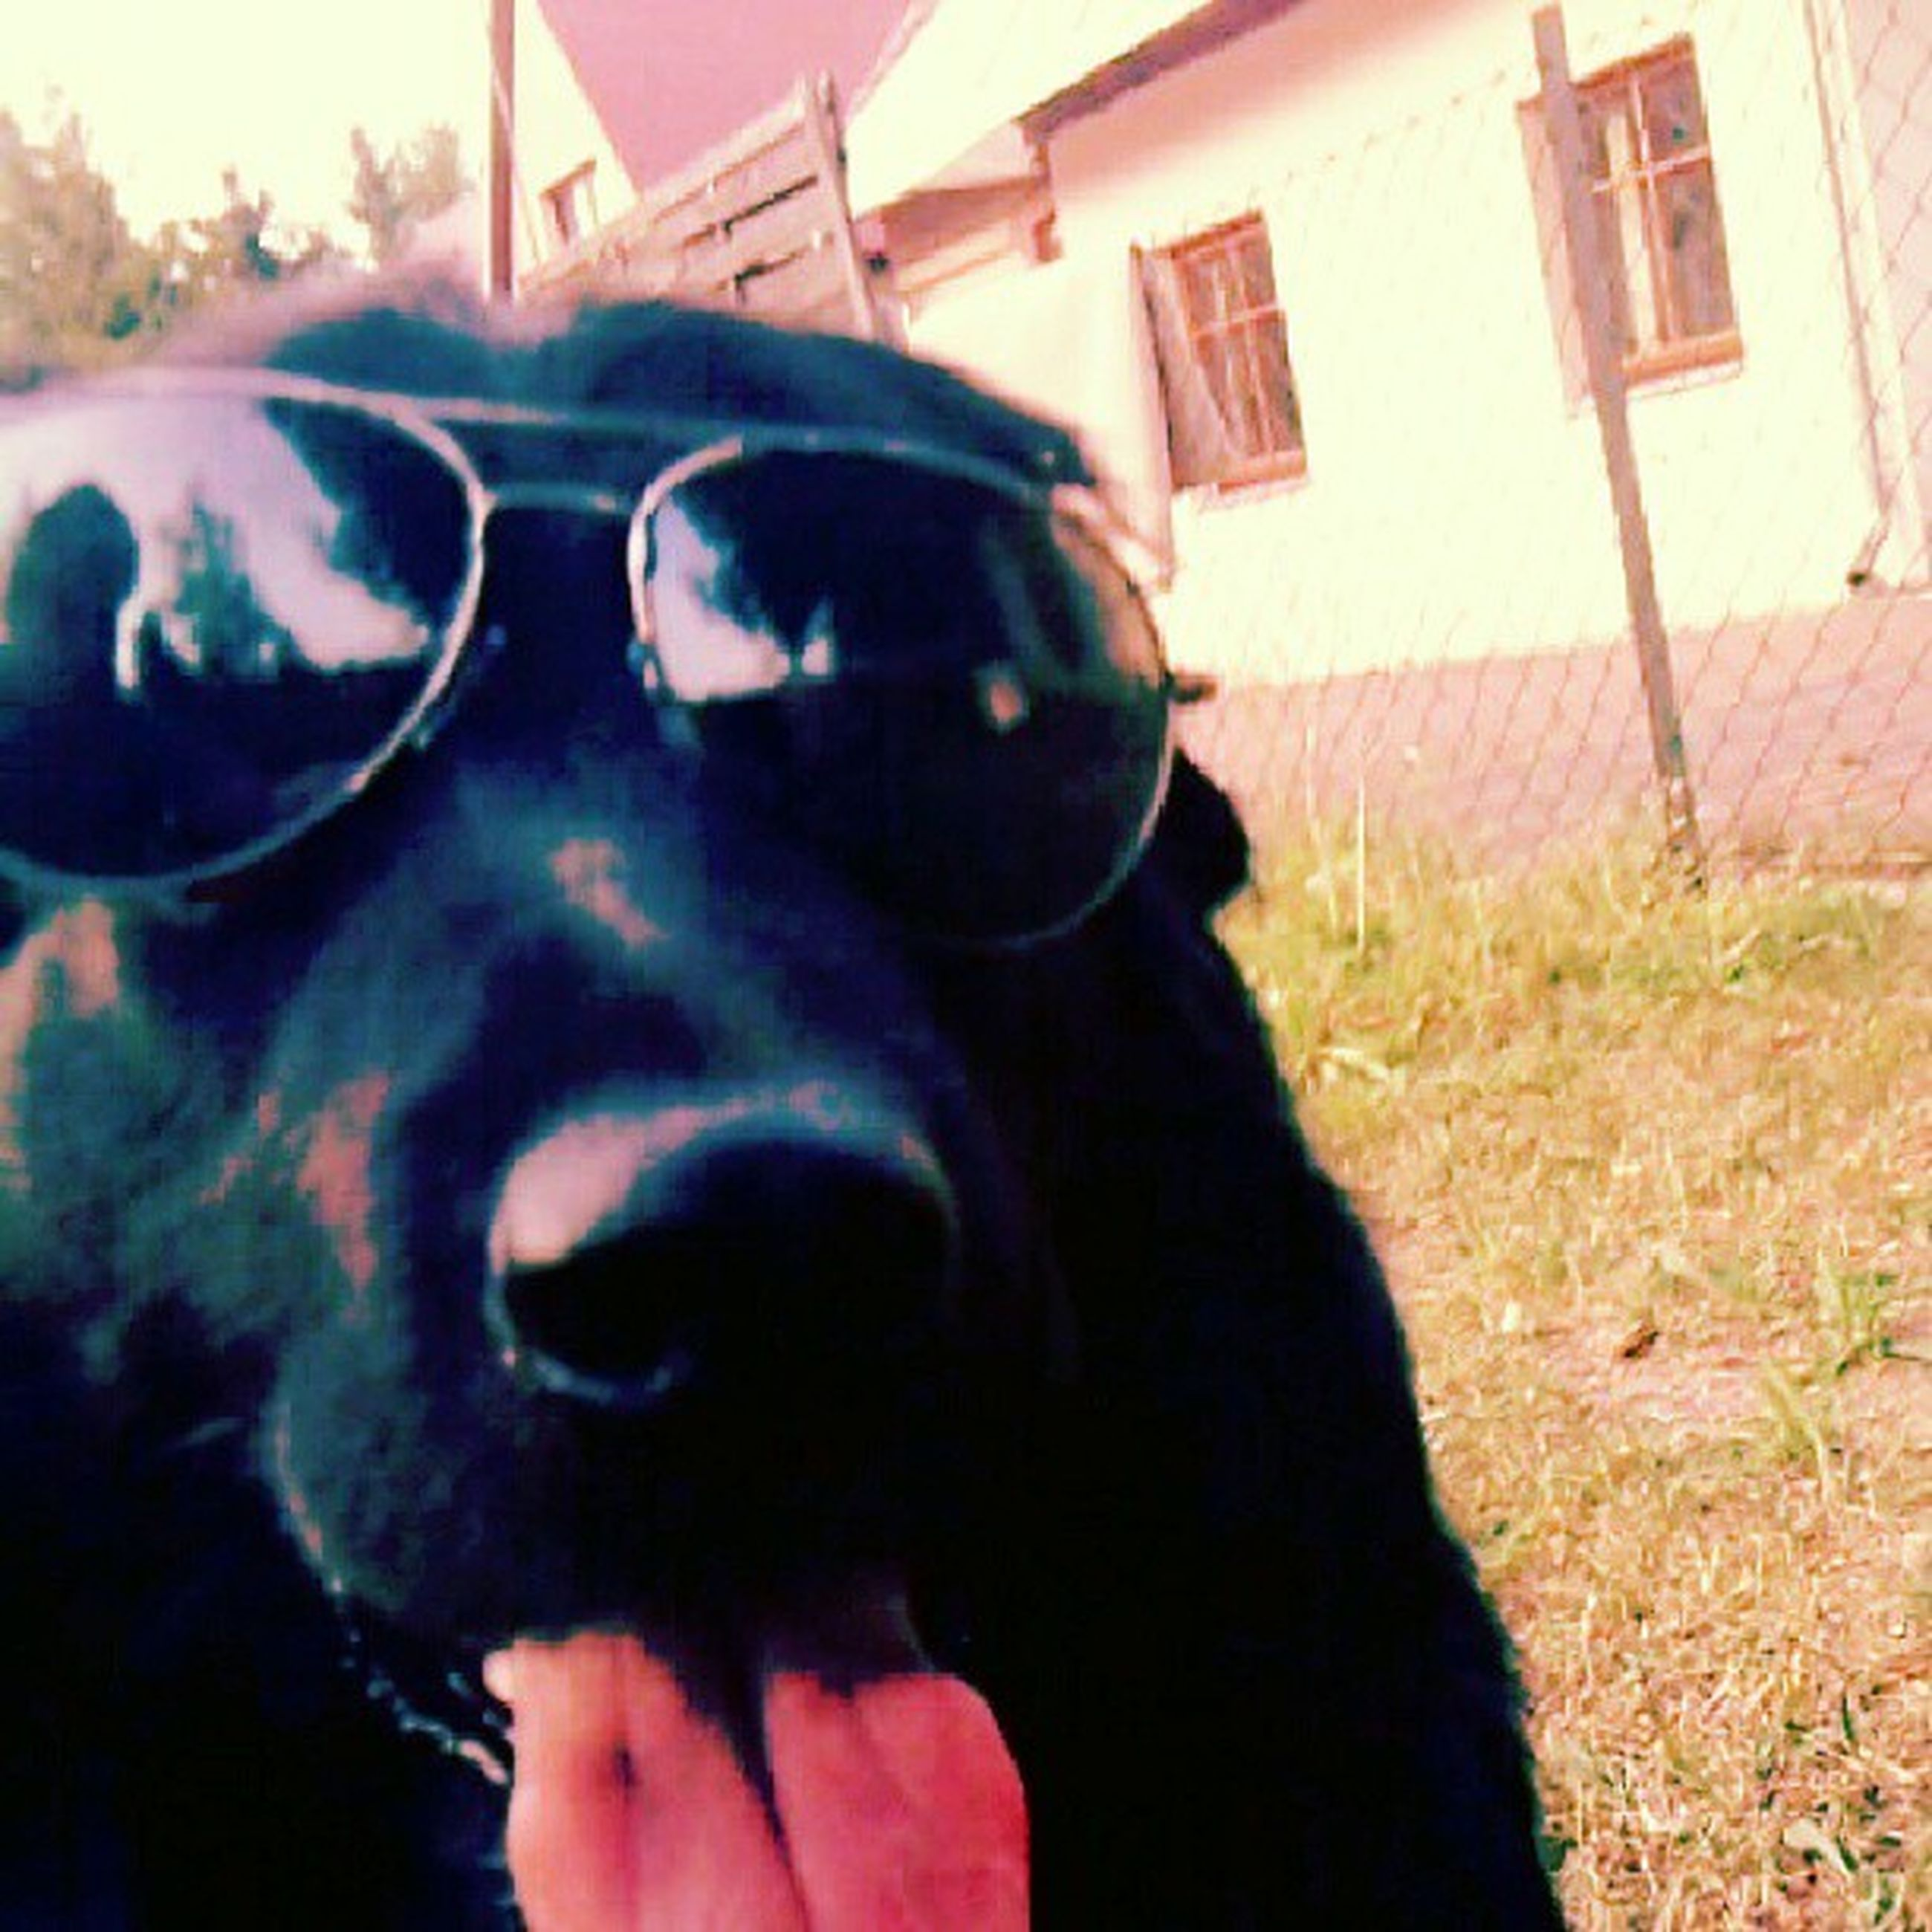 portrait, looking at camera, domestic animals, close-up, black color, built structure, architecture, building exterior, headshot, sunglasses, front view, dog, day, outdoors, sunlight, grass, standing, field